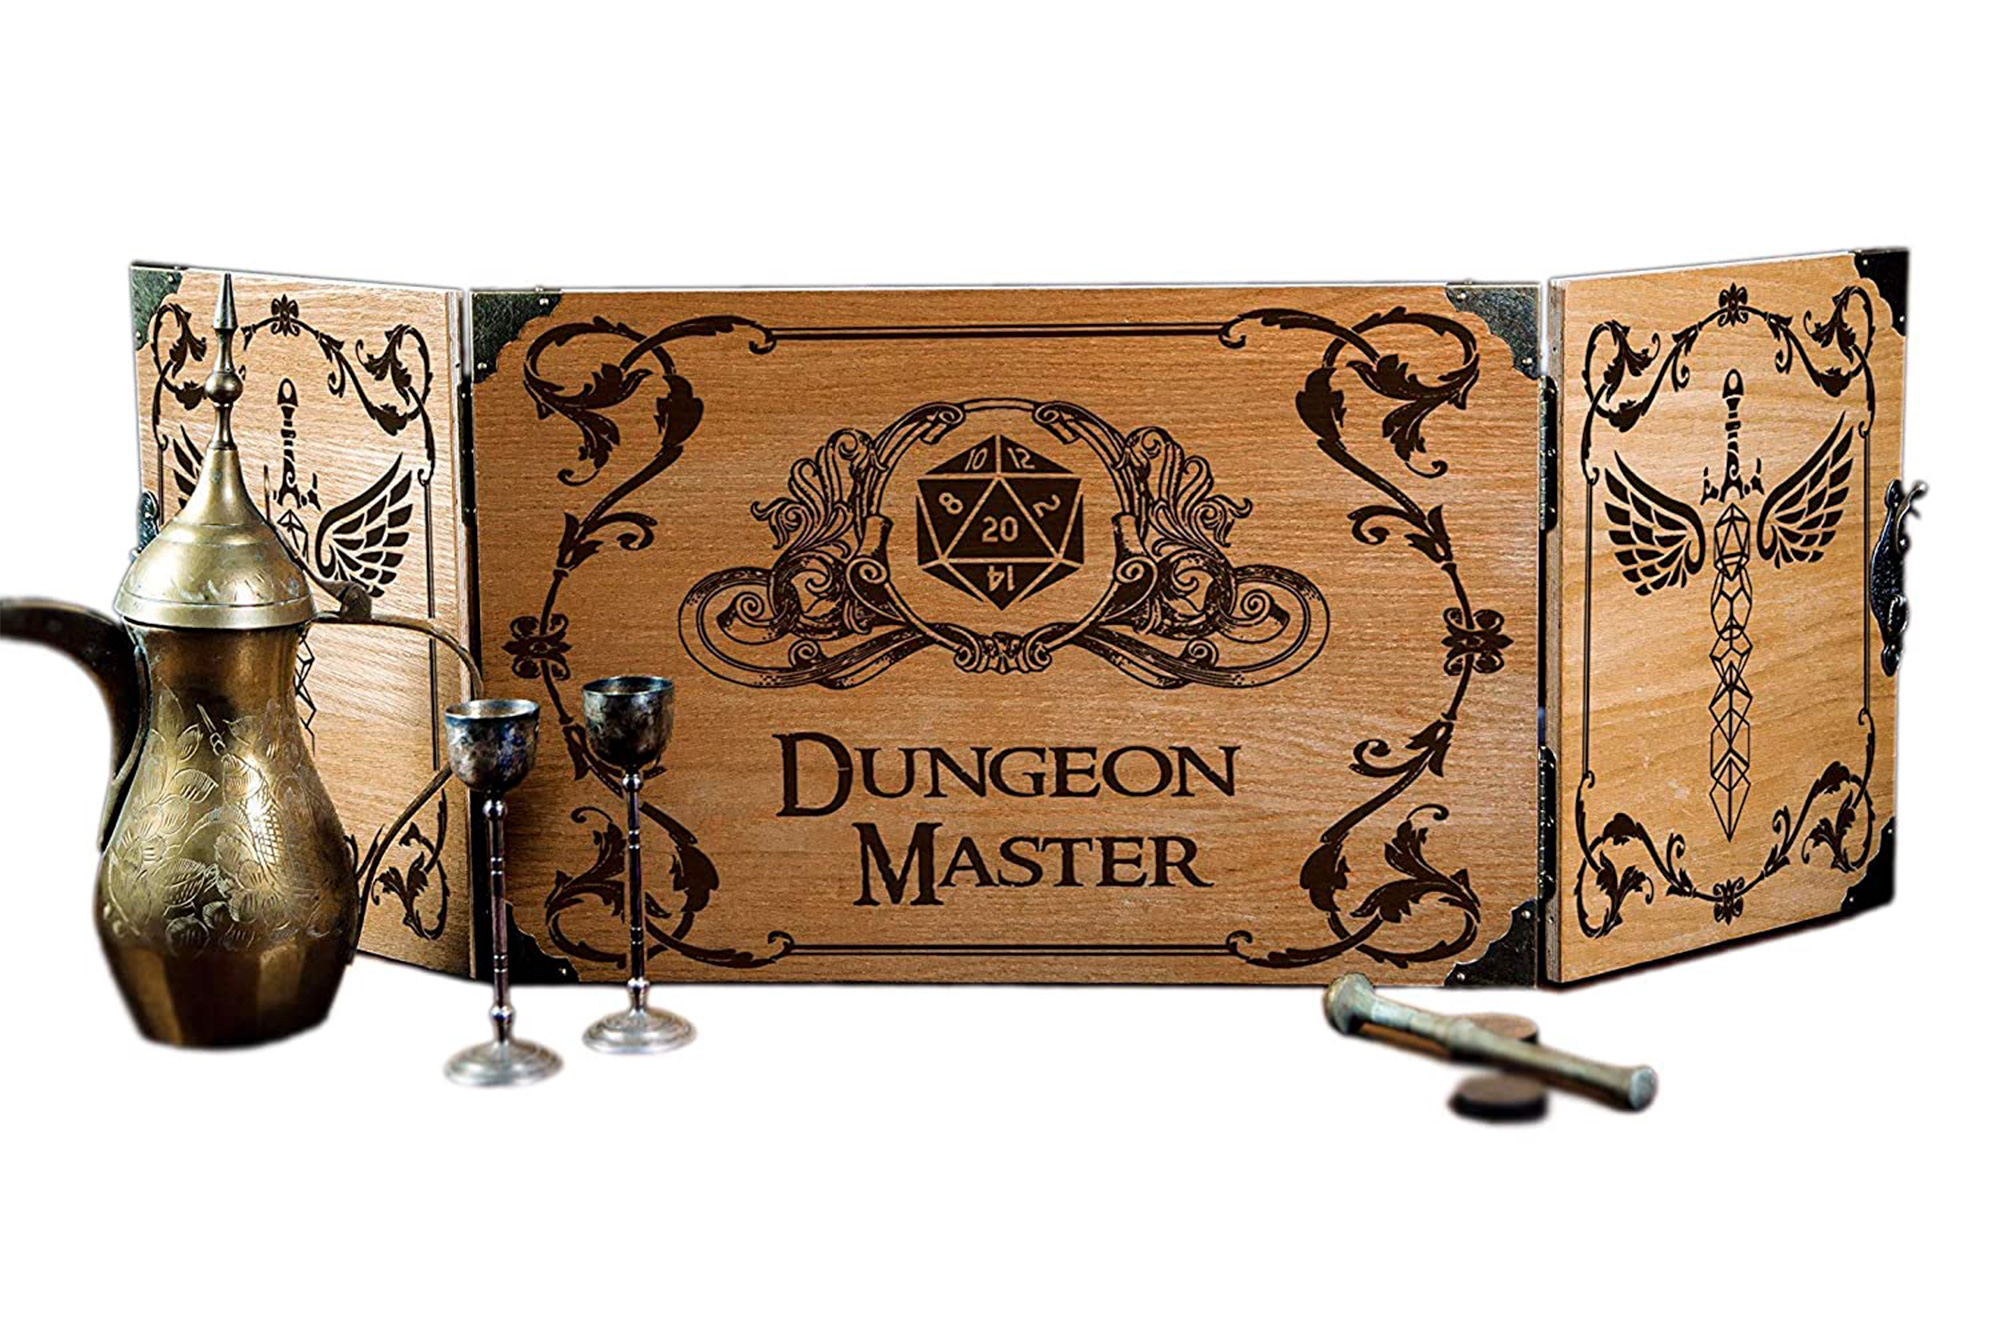 Dungeons and Dragons Merchandise